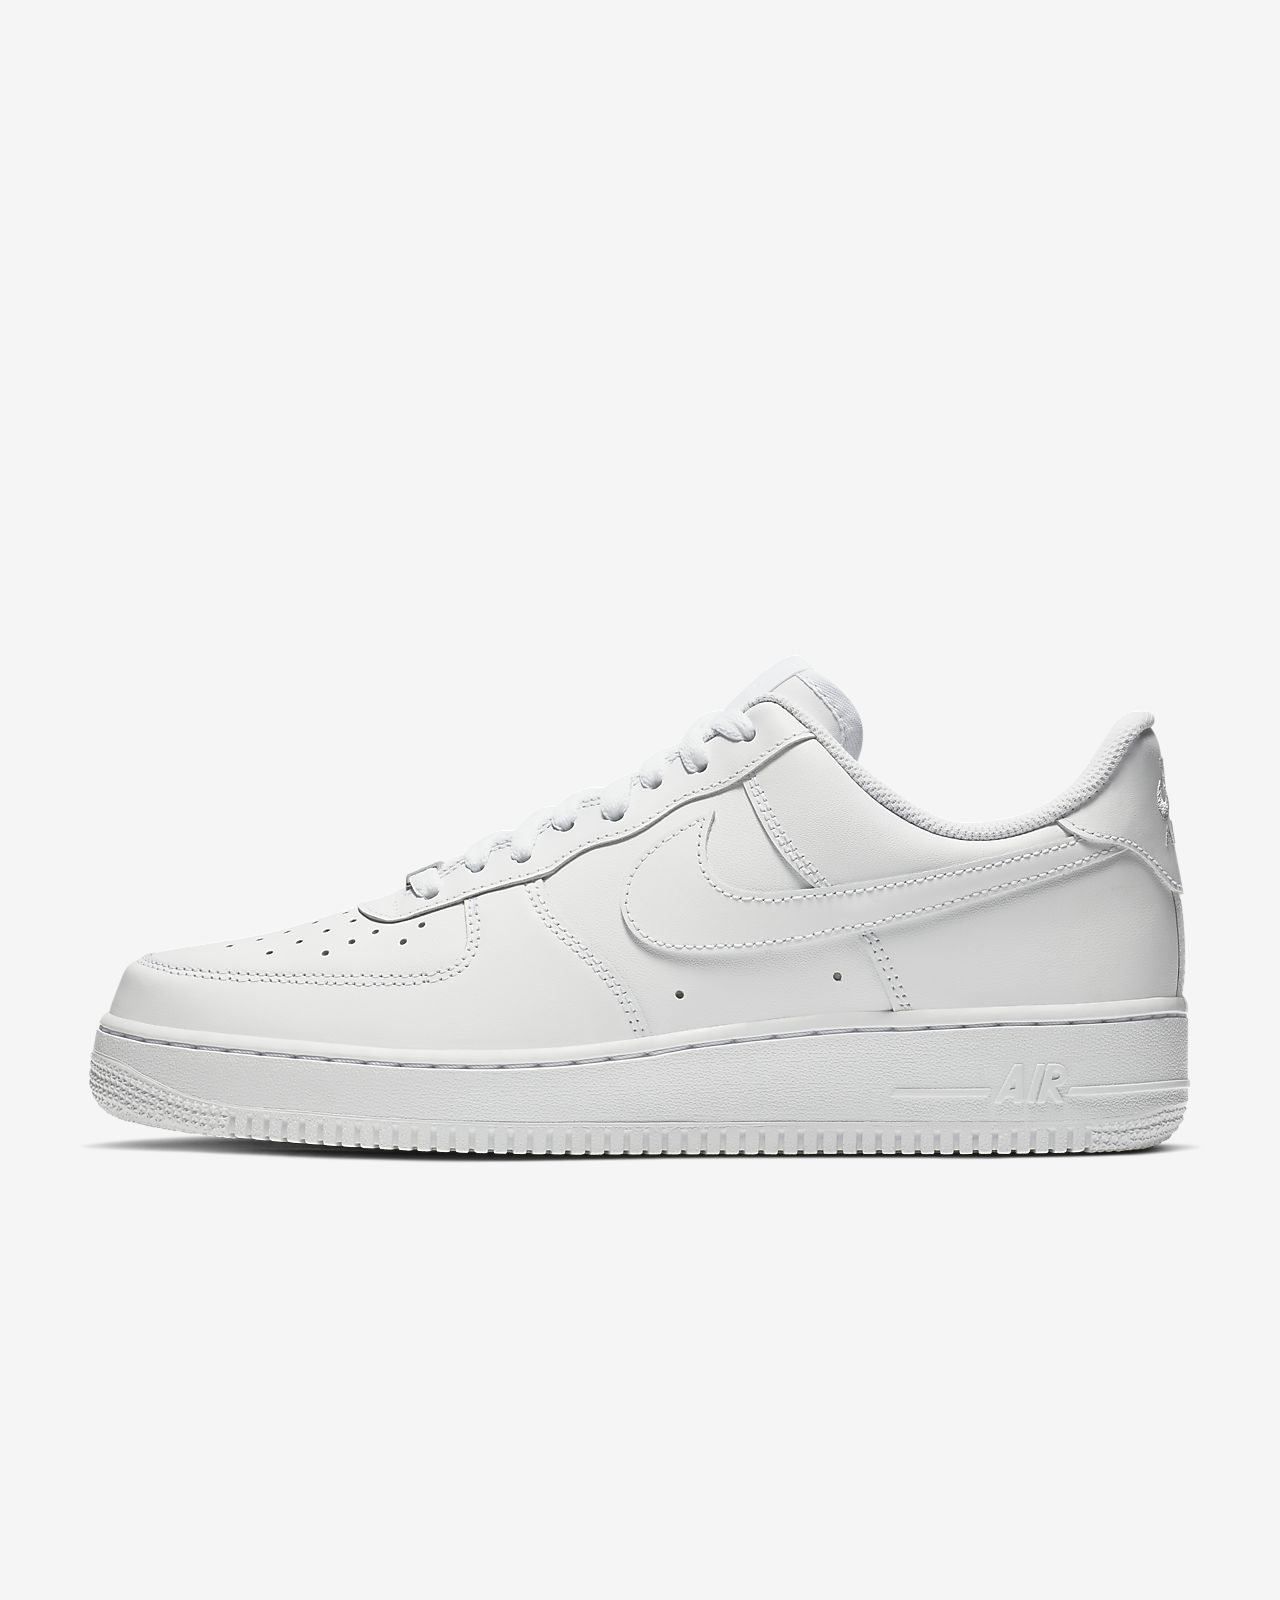 sports shoes d1f0d 36718 wholesale nike air force 1 07 herrenschuh 50c73 7e149